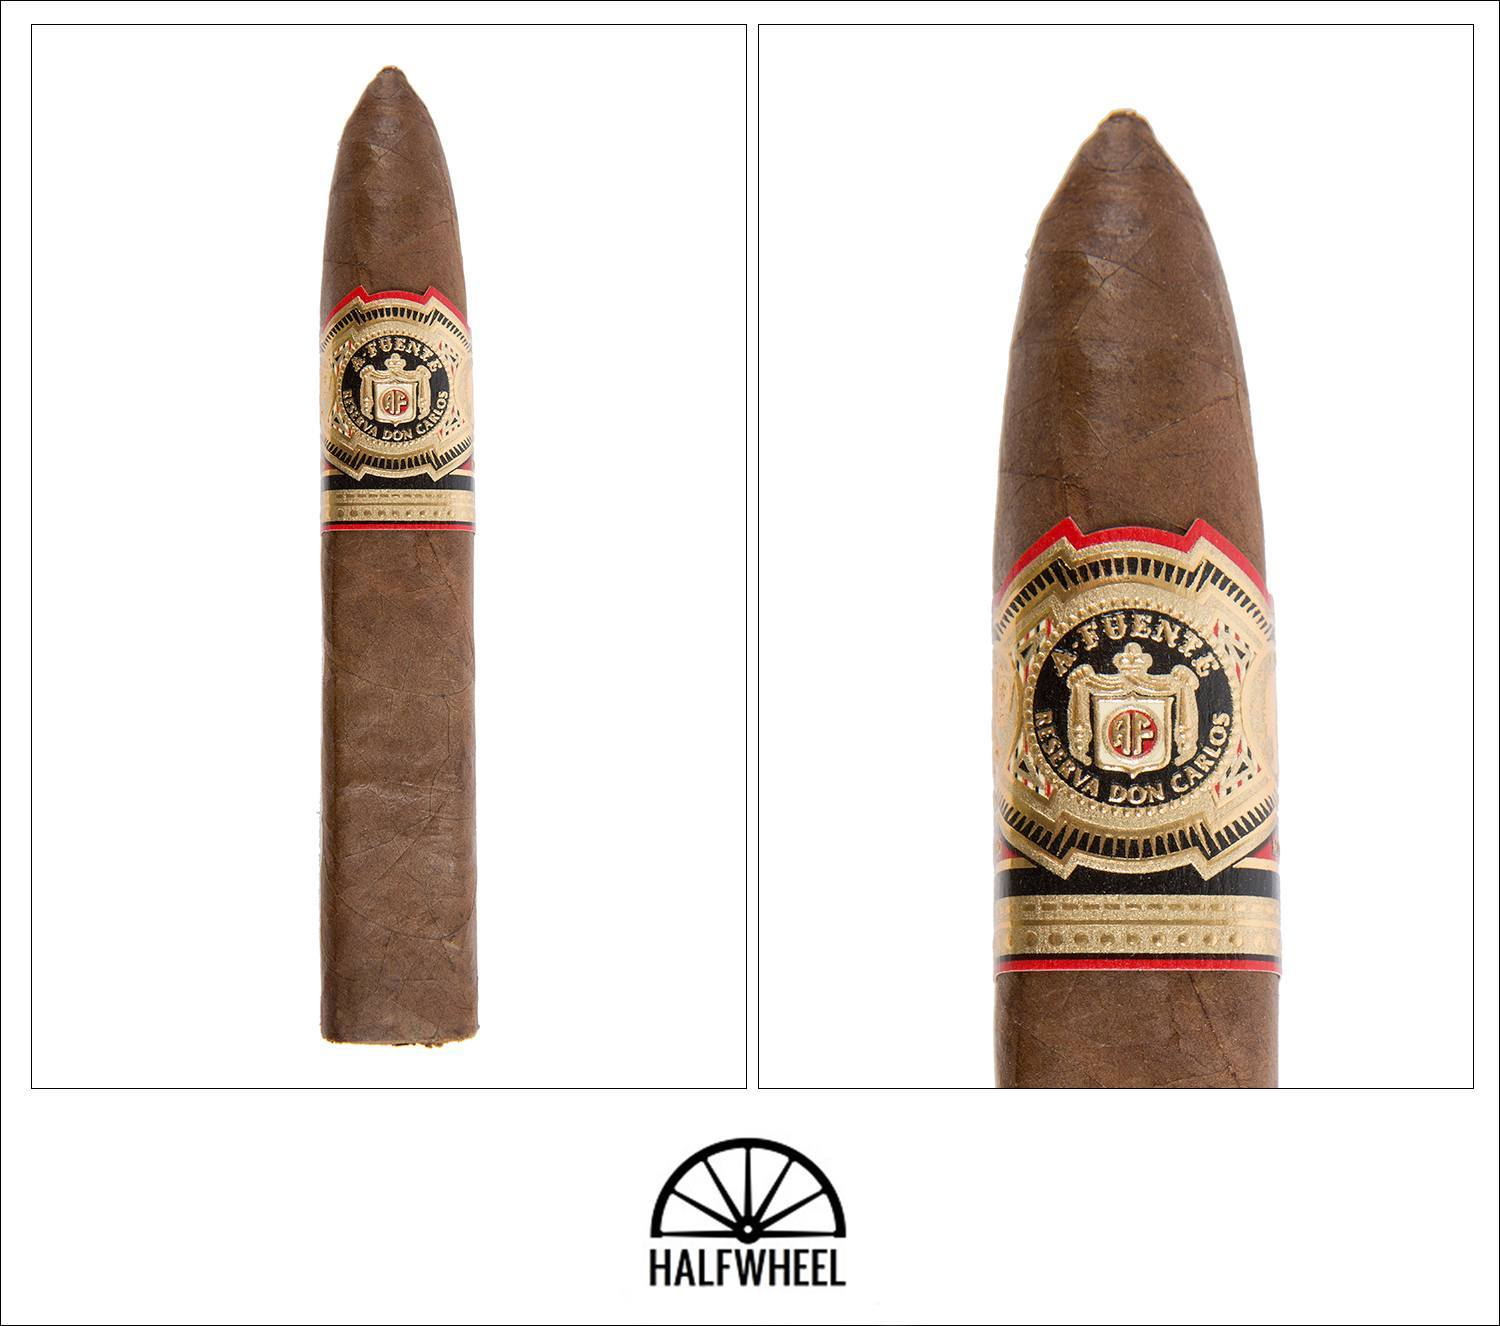 Arturo Fuente Don Carlos Eye of the Shark 1